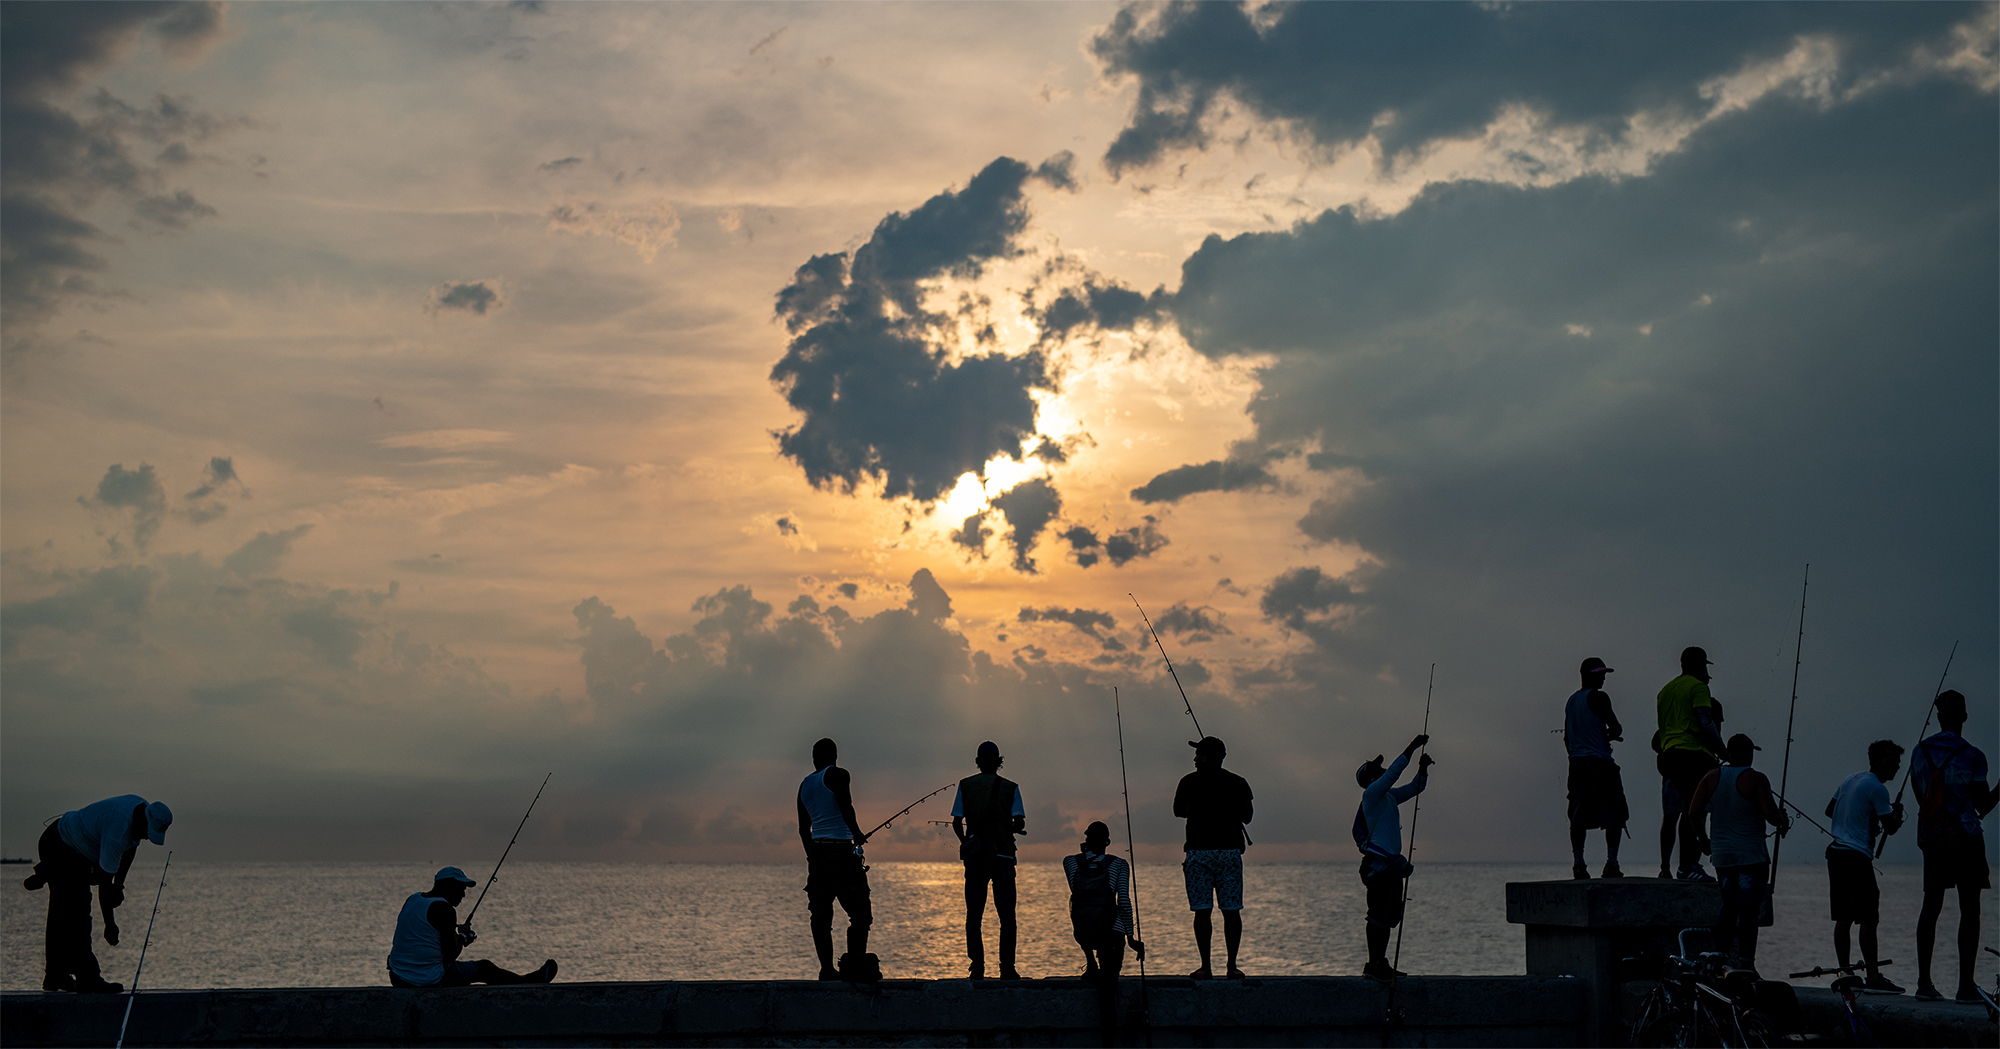 Every day fishers gather at the Castillo de San Salvador de la Punta to cast their lines.